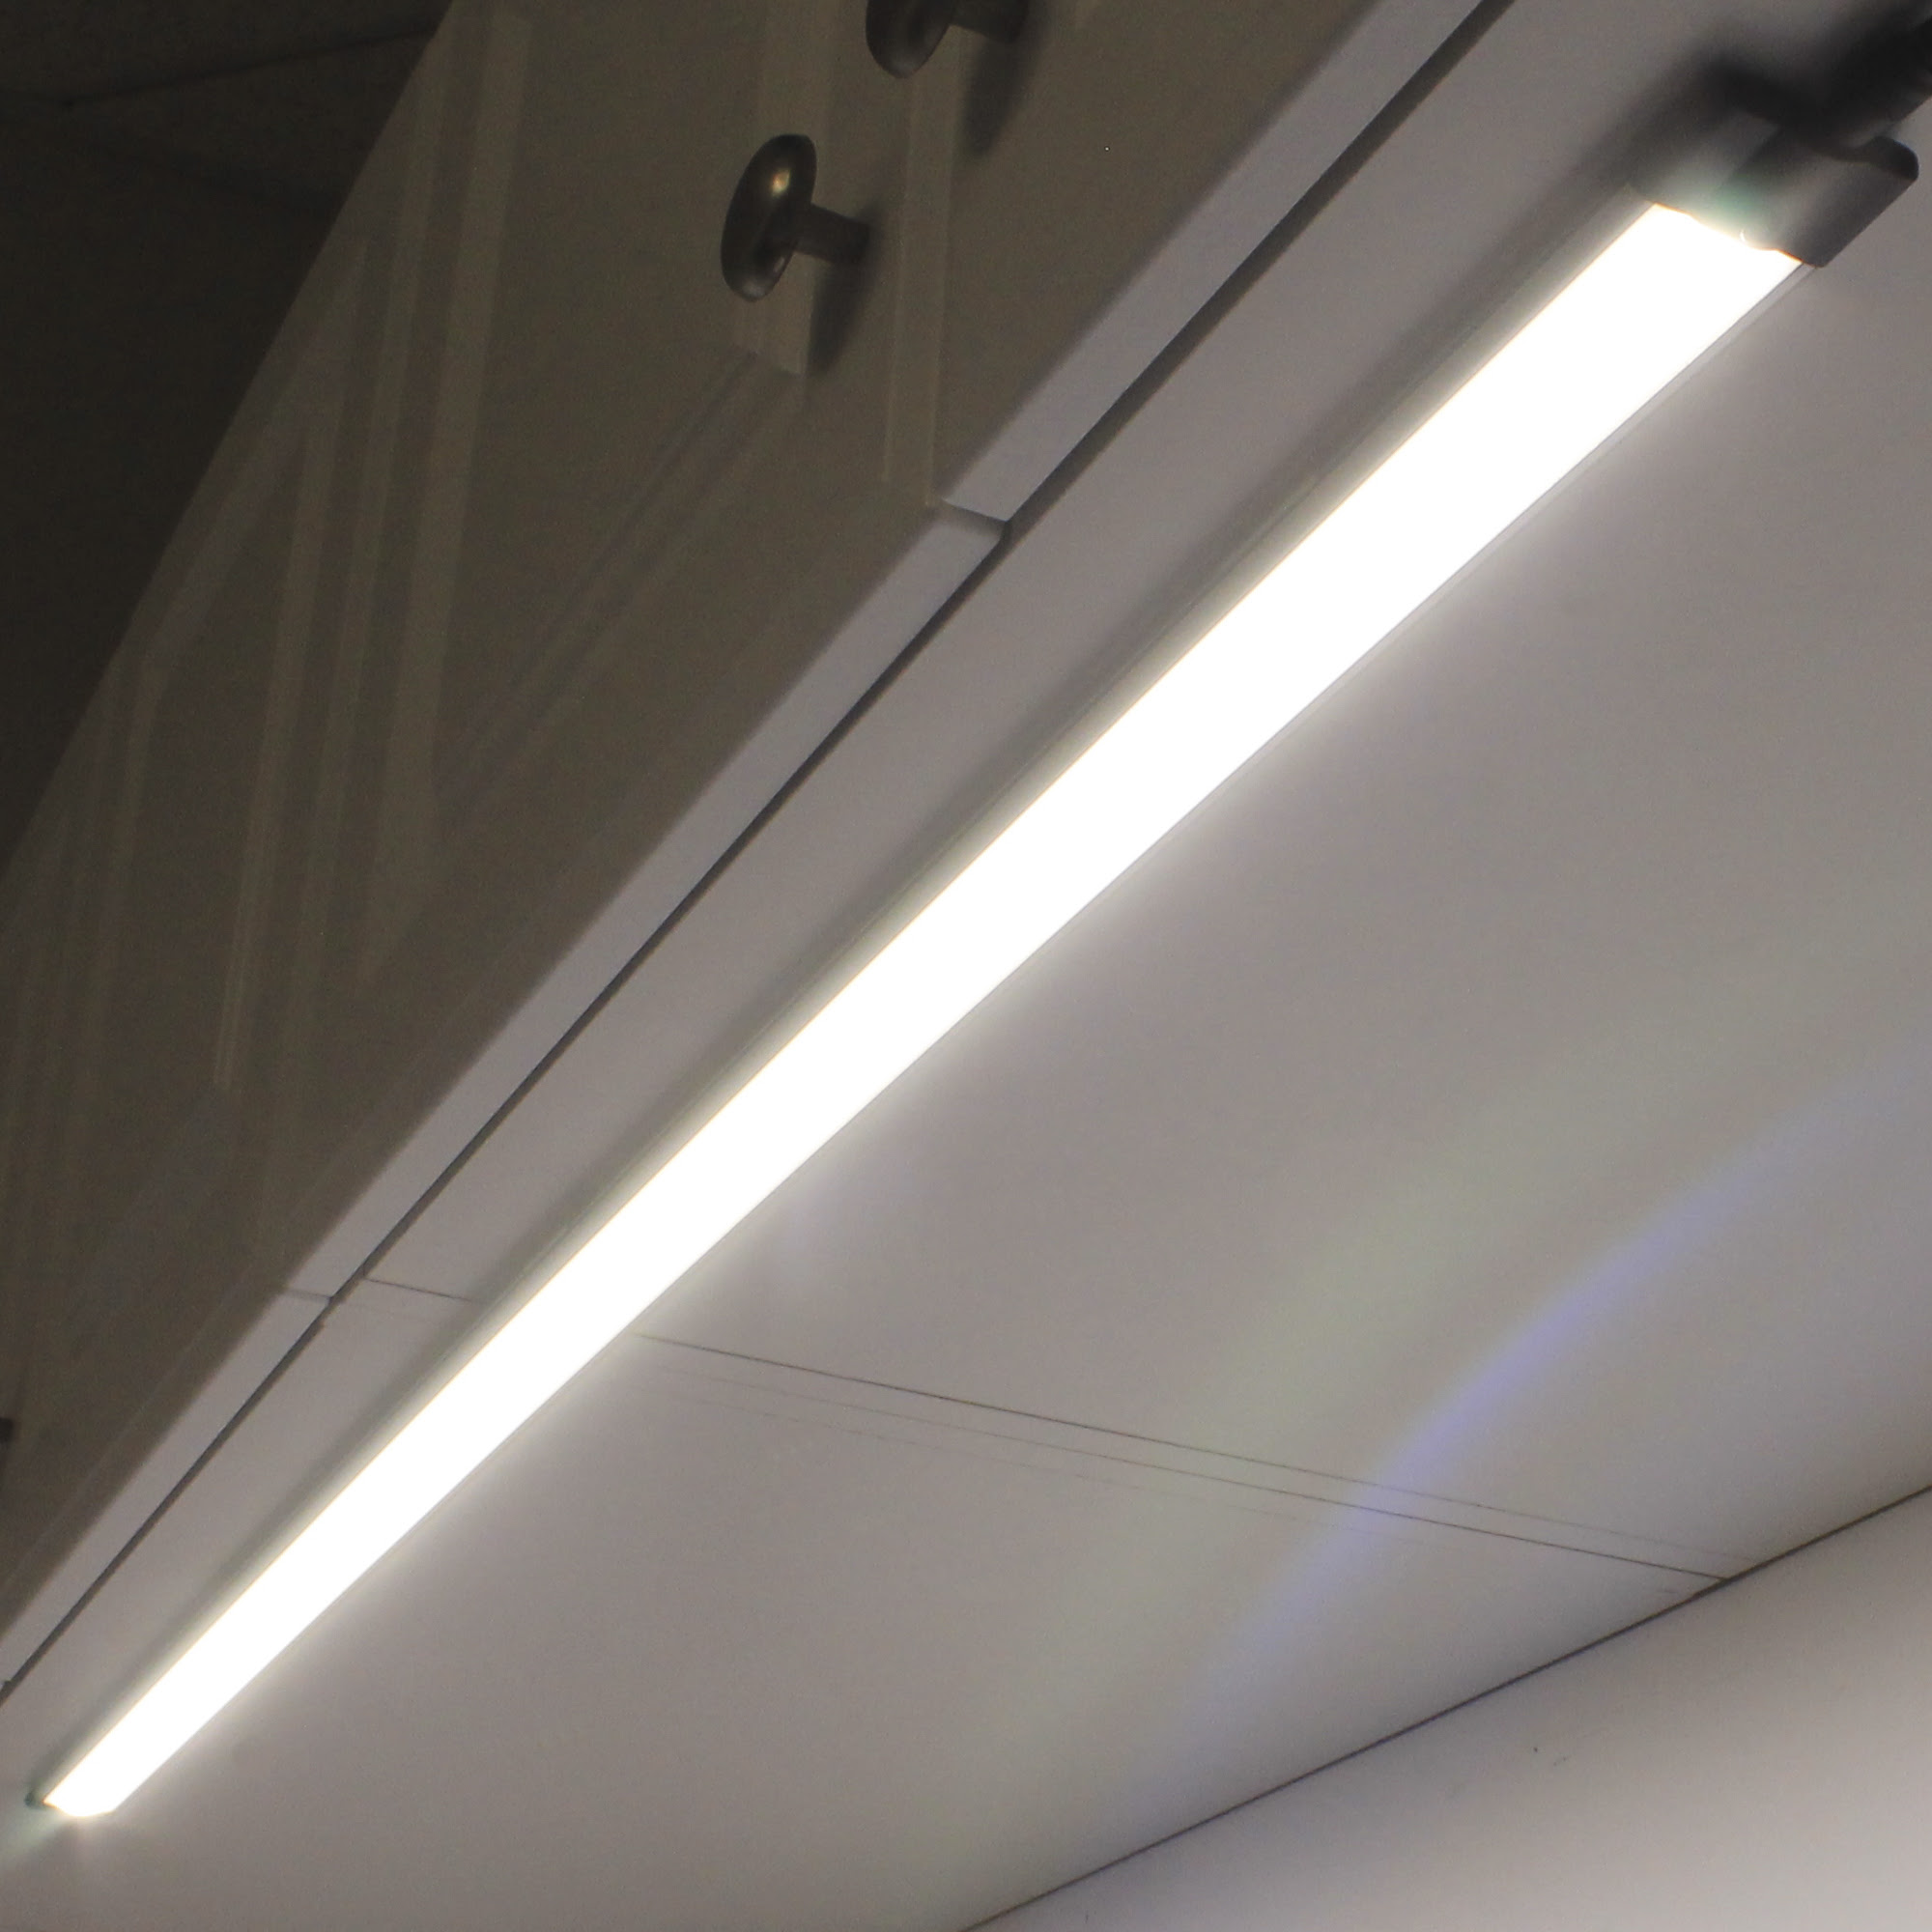 EnvironmentalLights.com Adds New Line of LED Under Cabinet ...